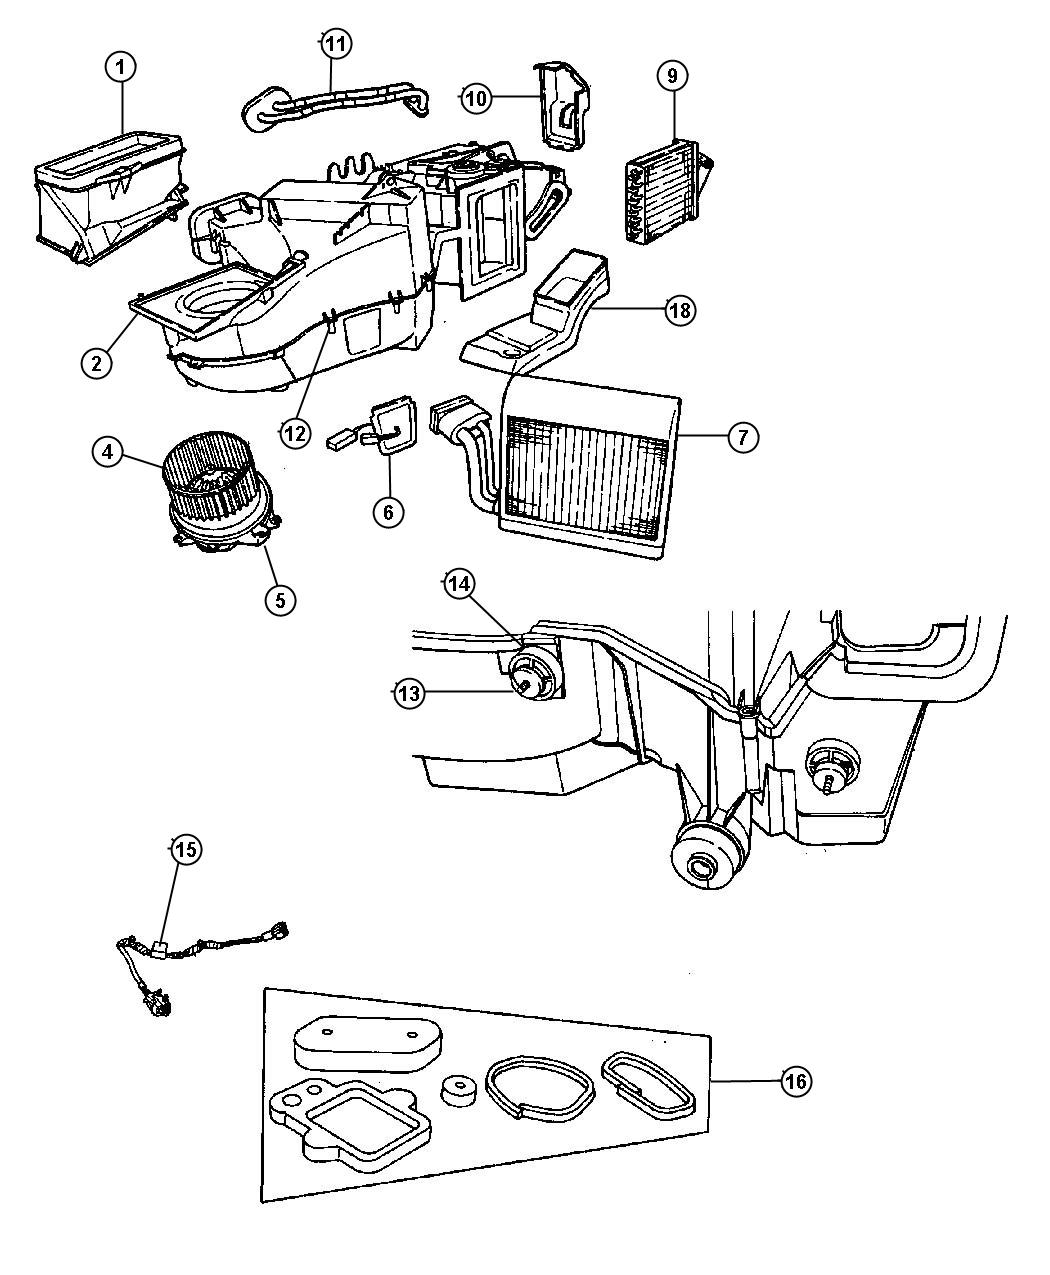 2007 Chrysler Town And Country Air Conditioning Diagram